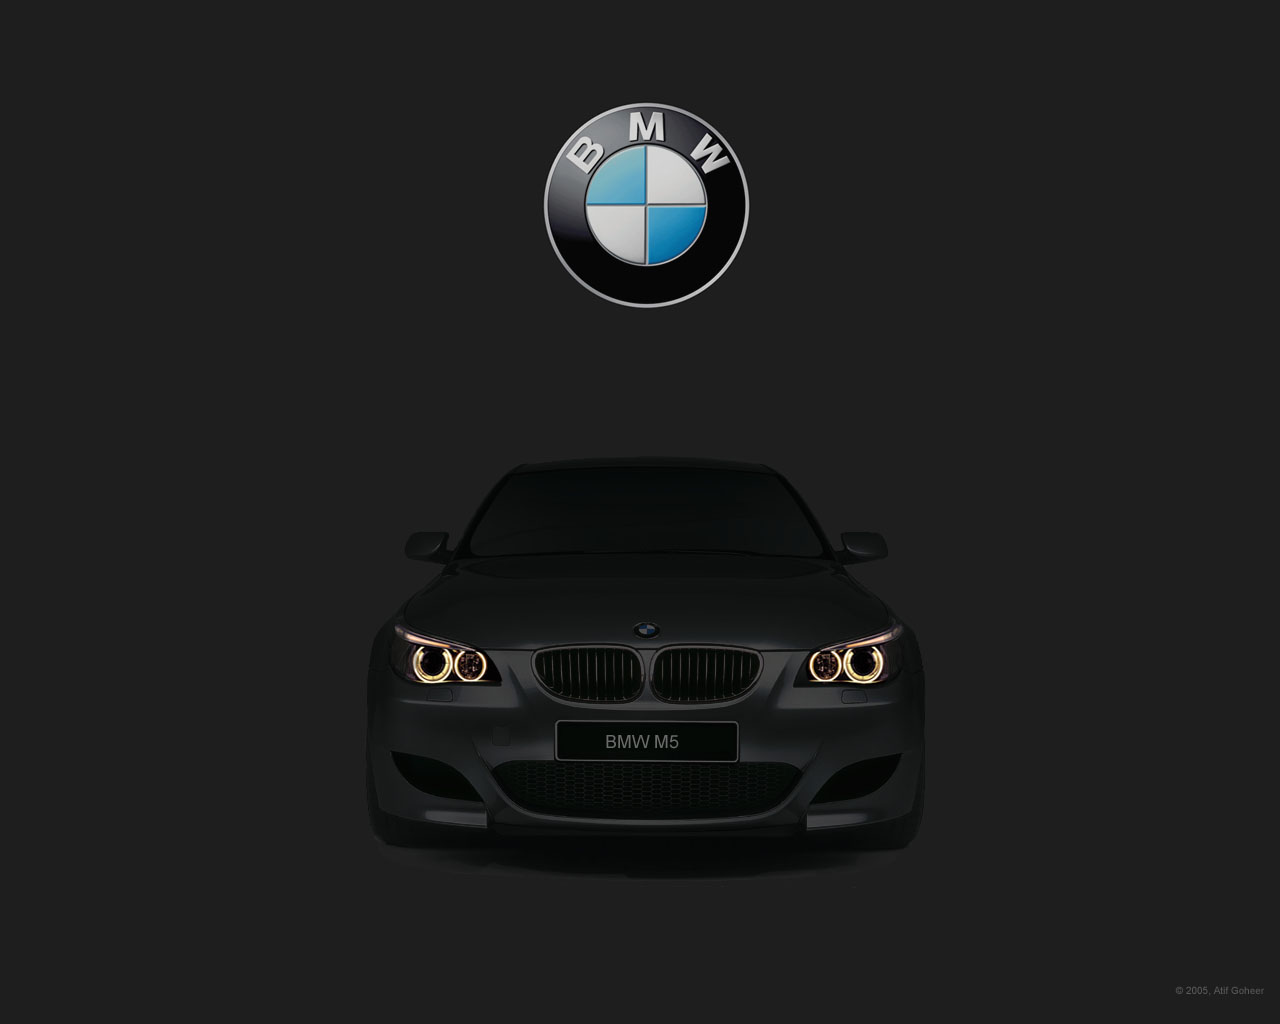 2005 Bmw M5 Wallpapers